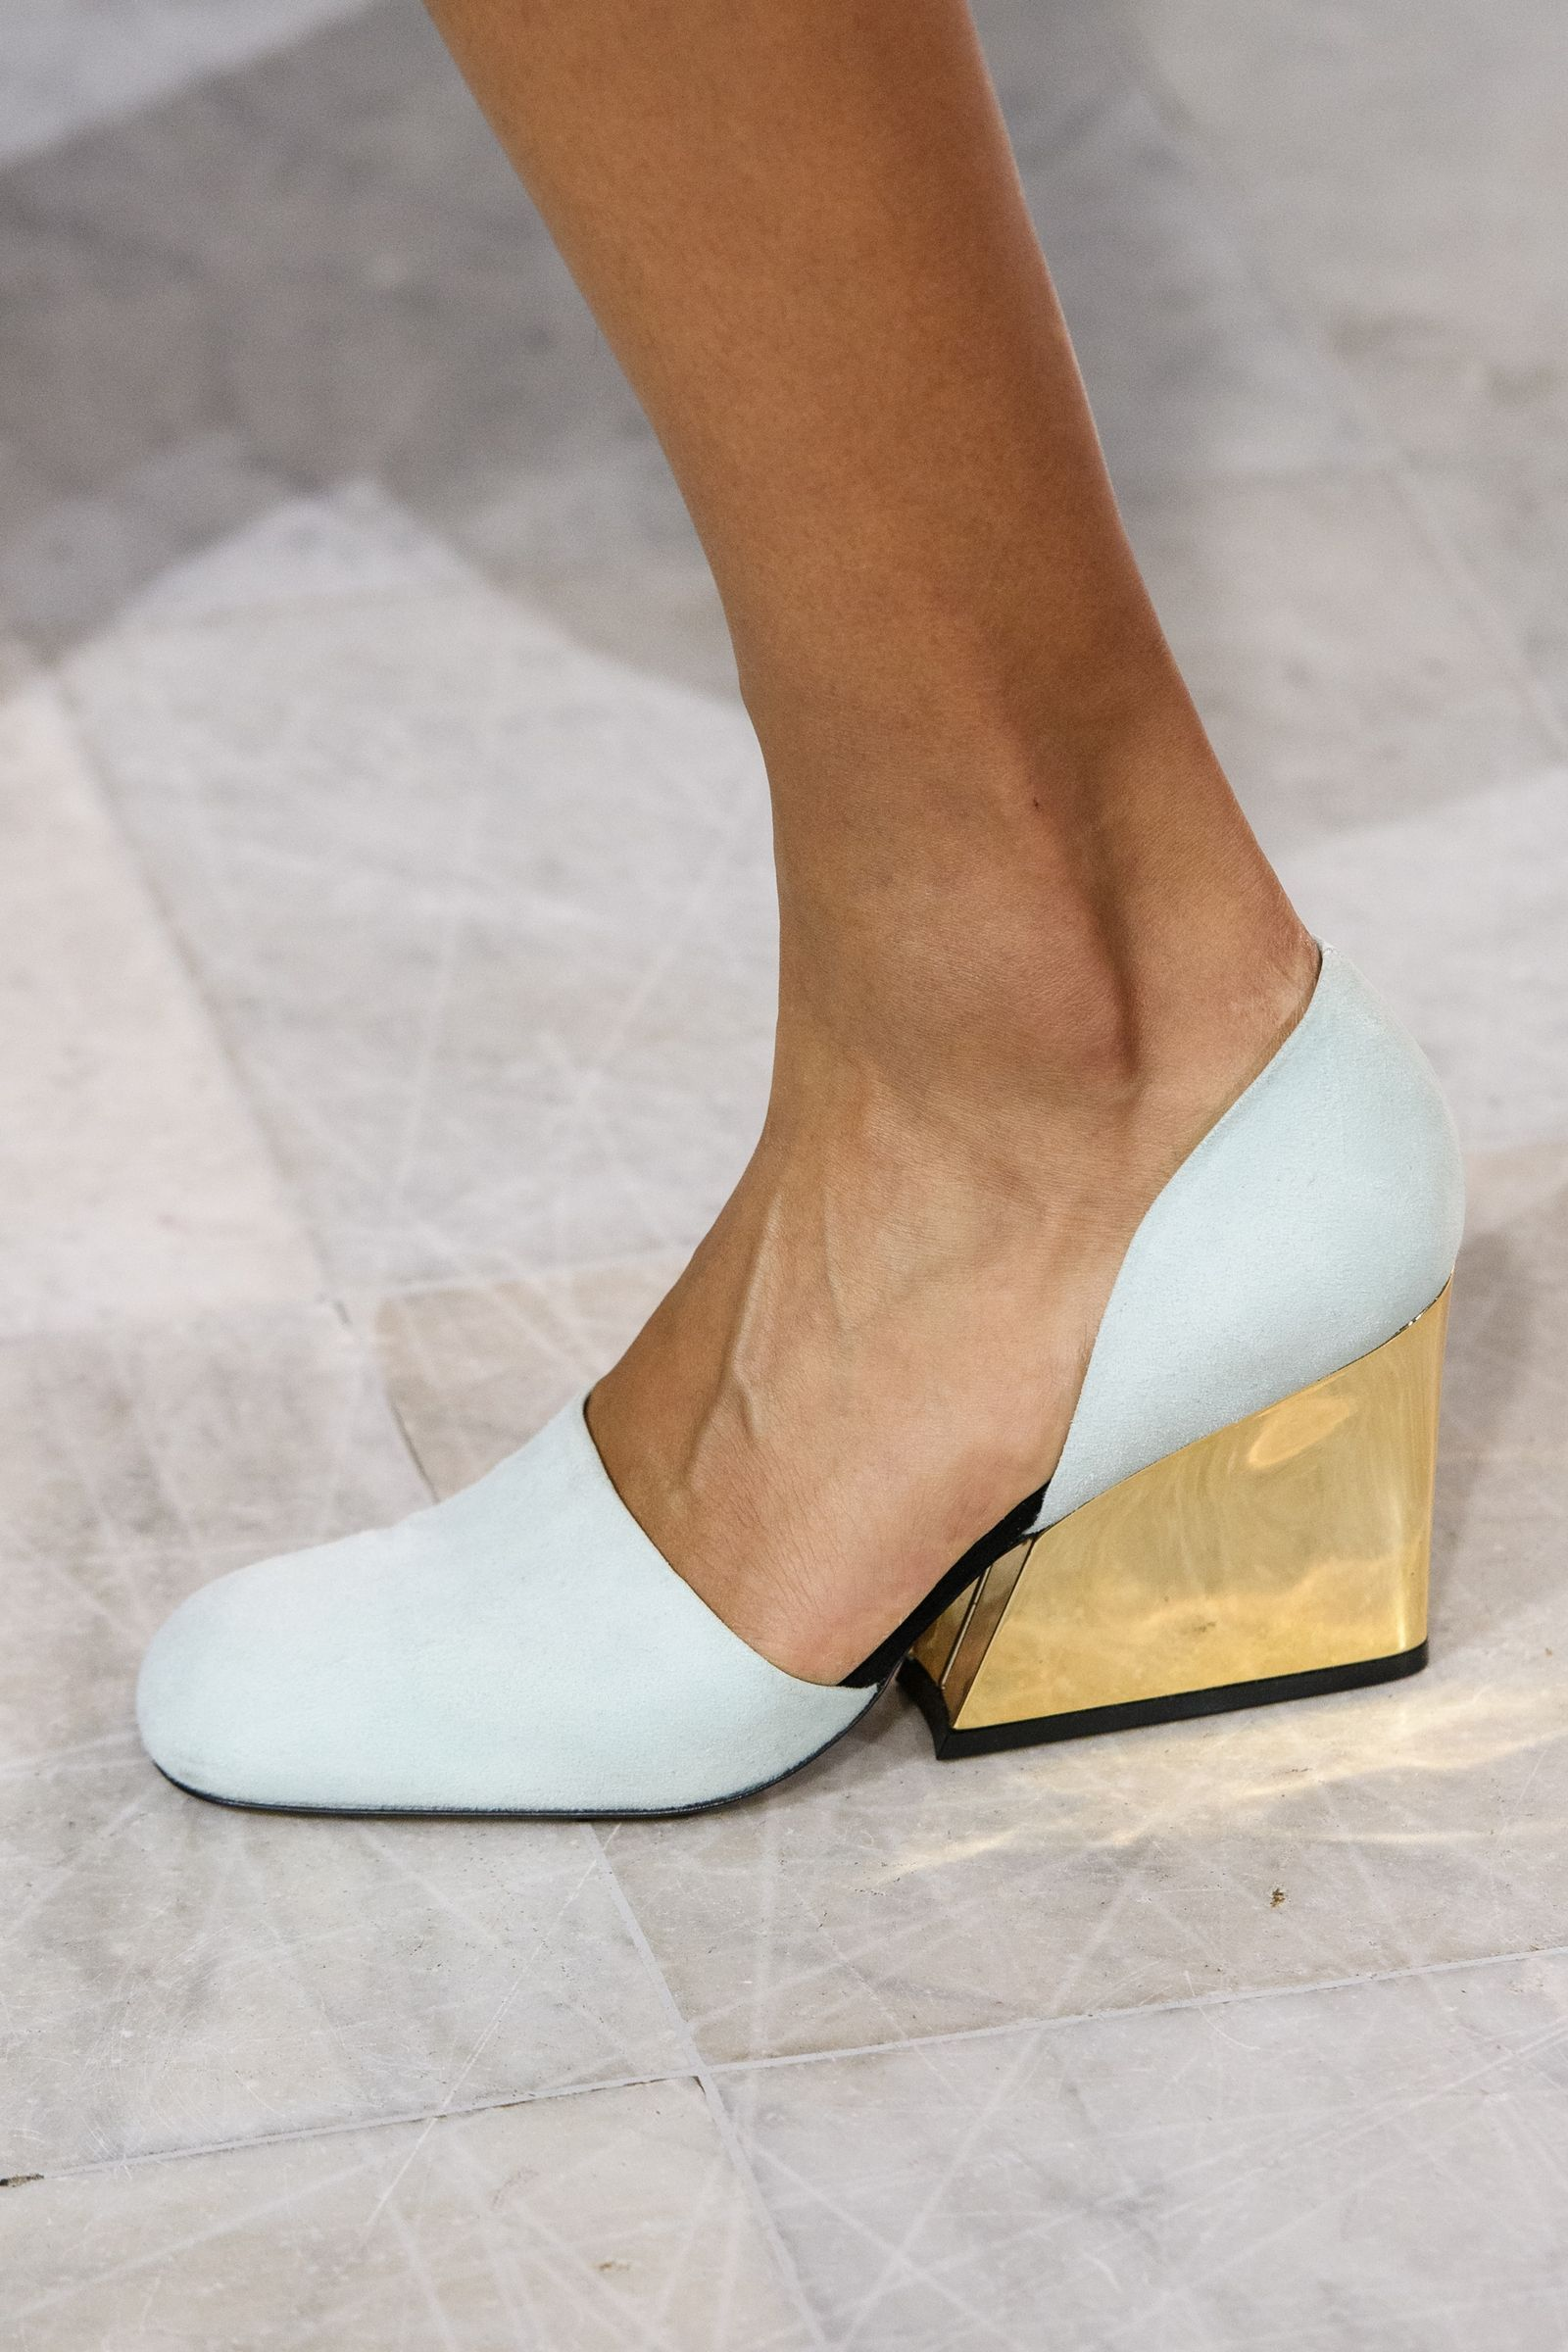 2019 year style- Trends Fashion summer foto shoes pictures